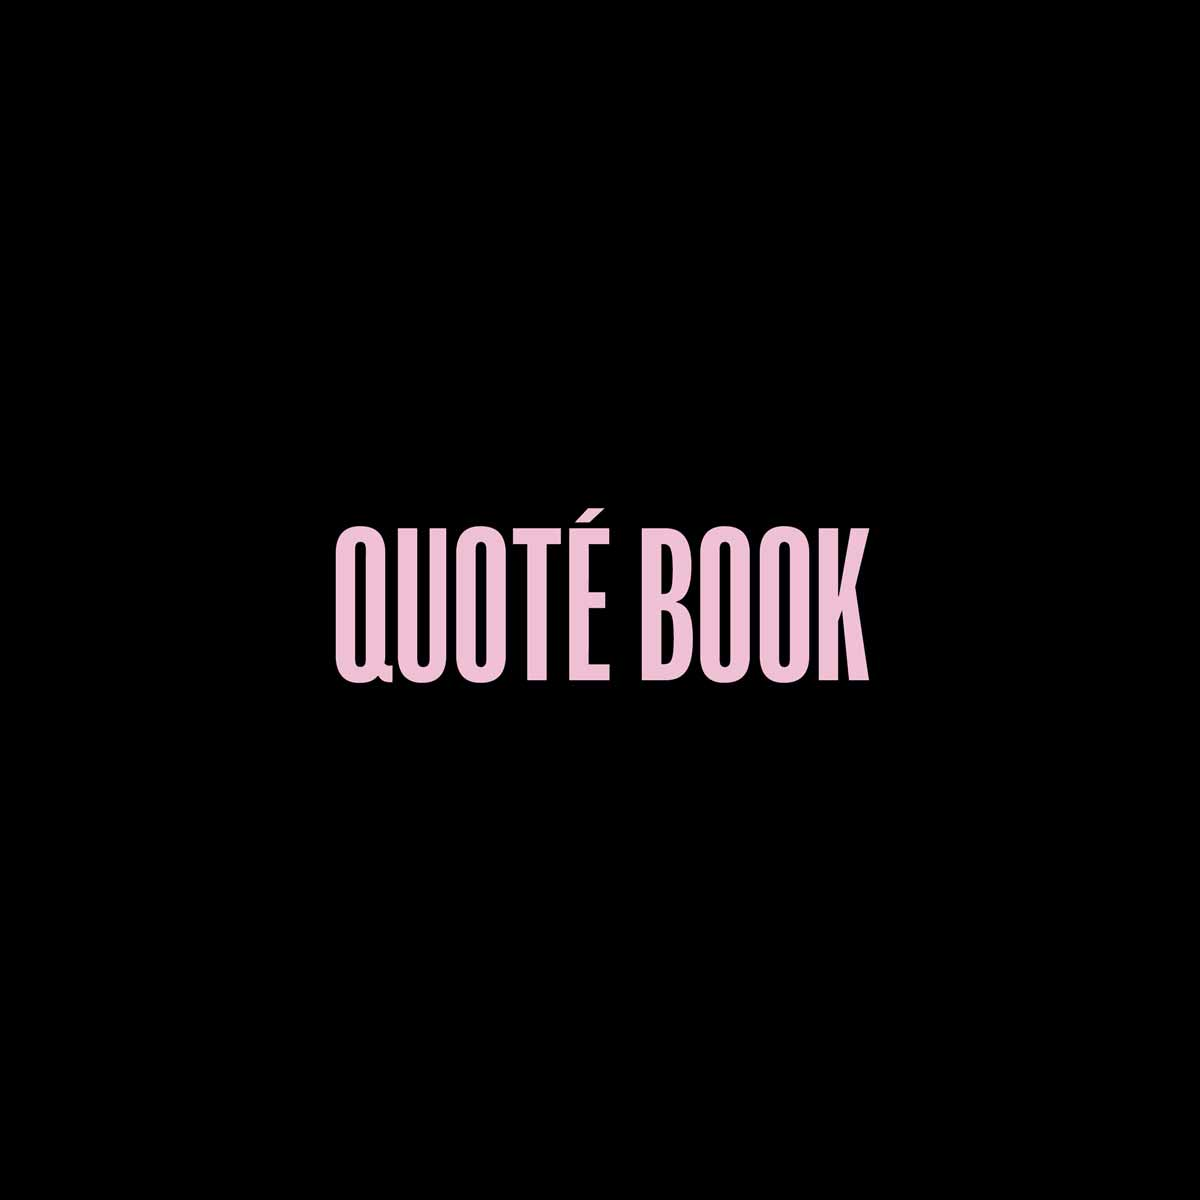 QuoteBook Case Study